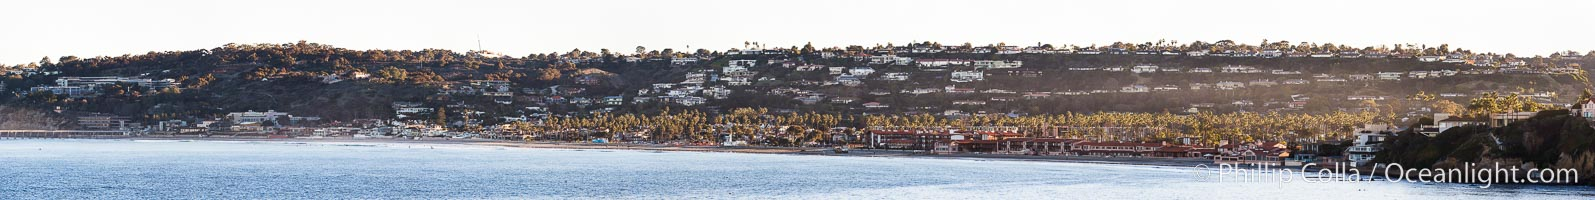 La Jolla Shores, viewed from Point La Jolla, panorama, morning